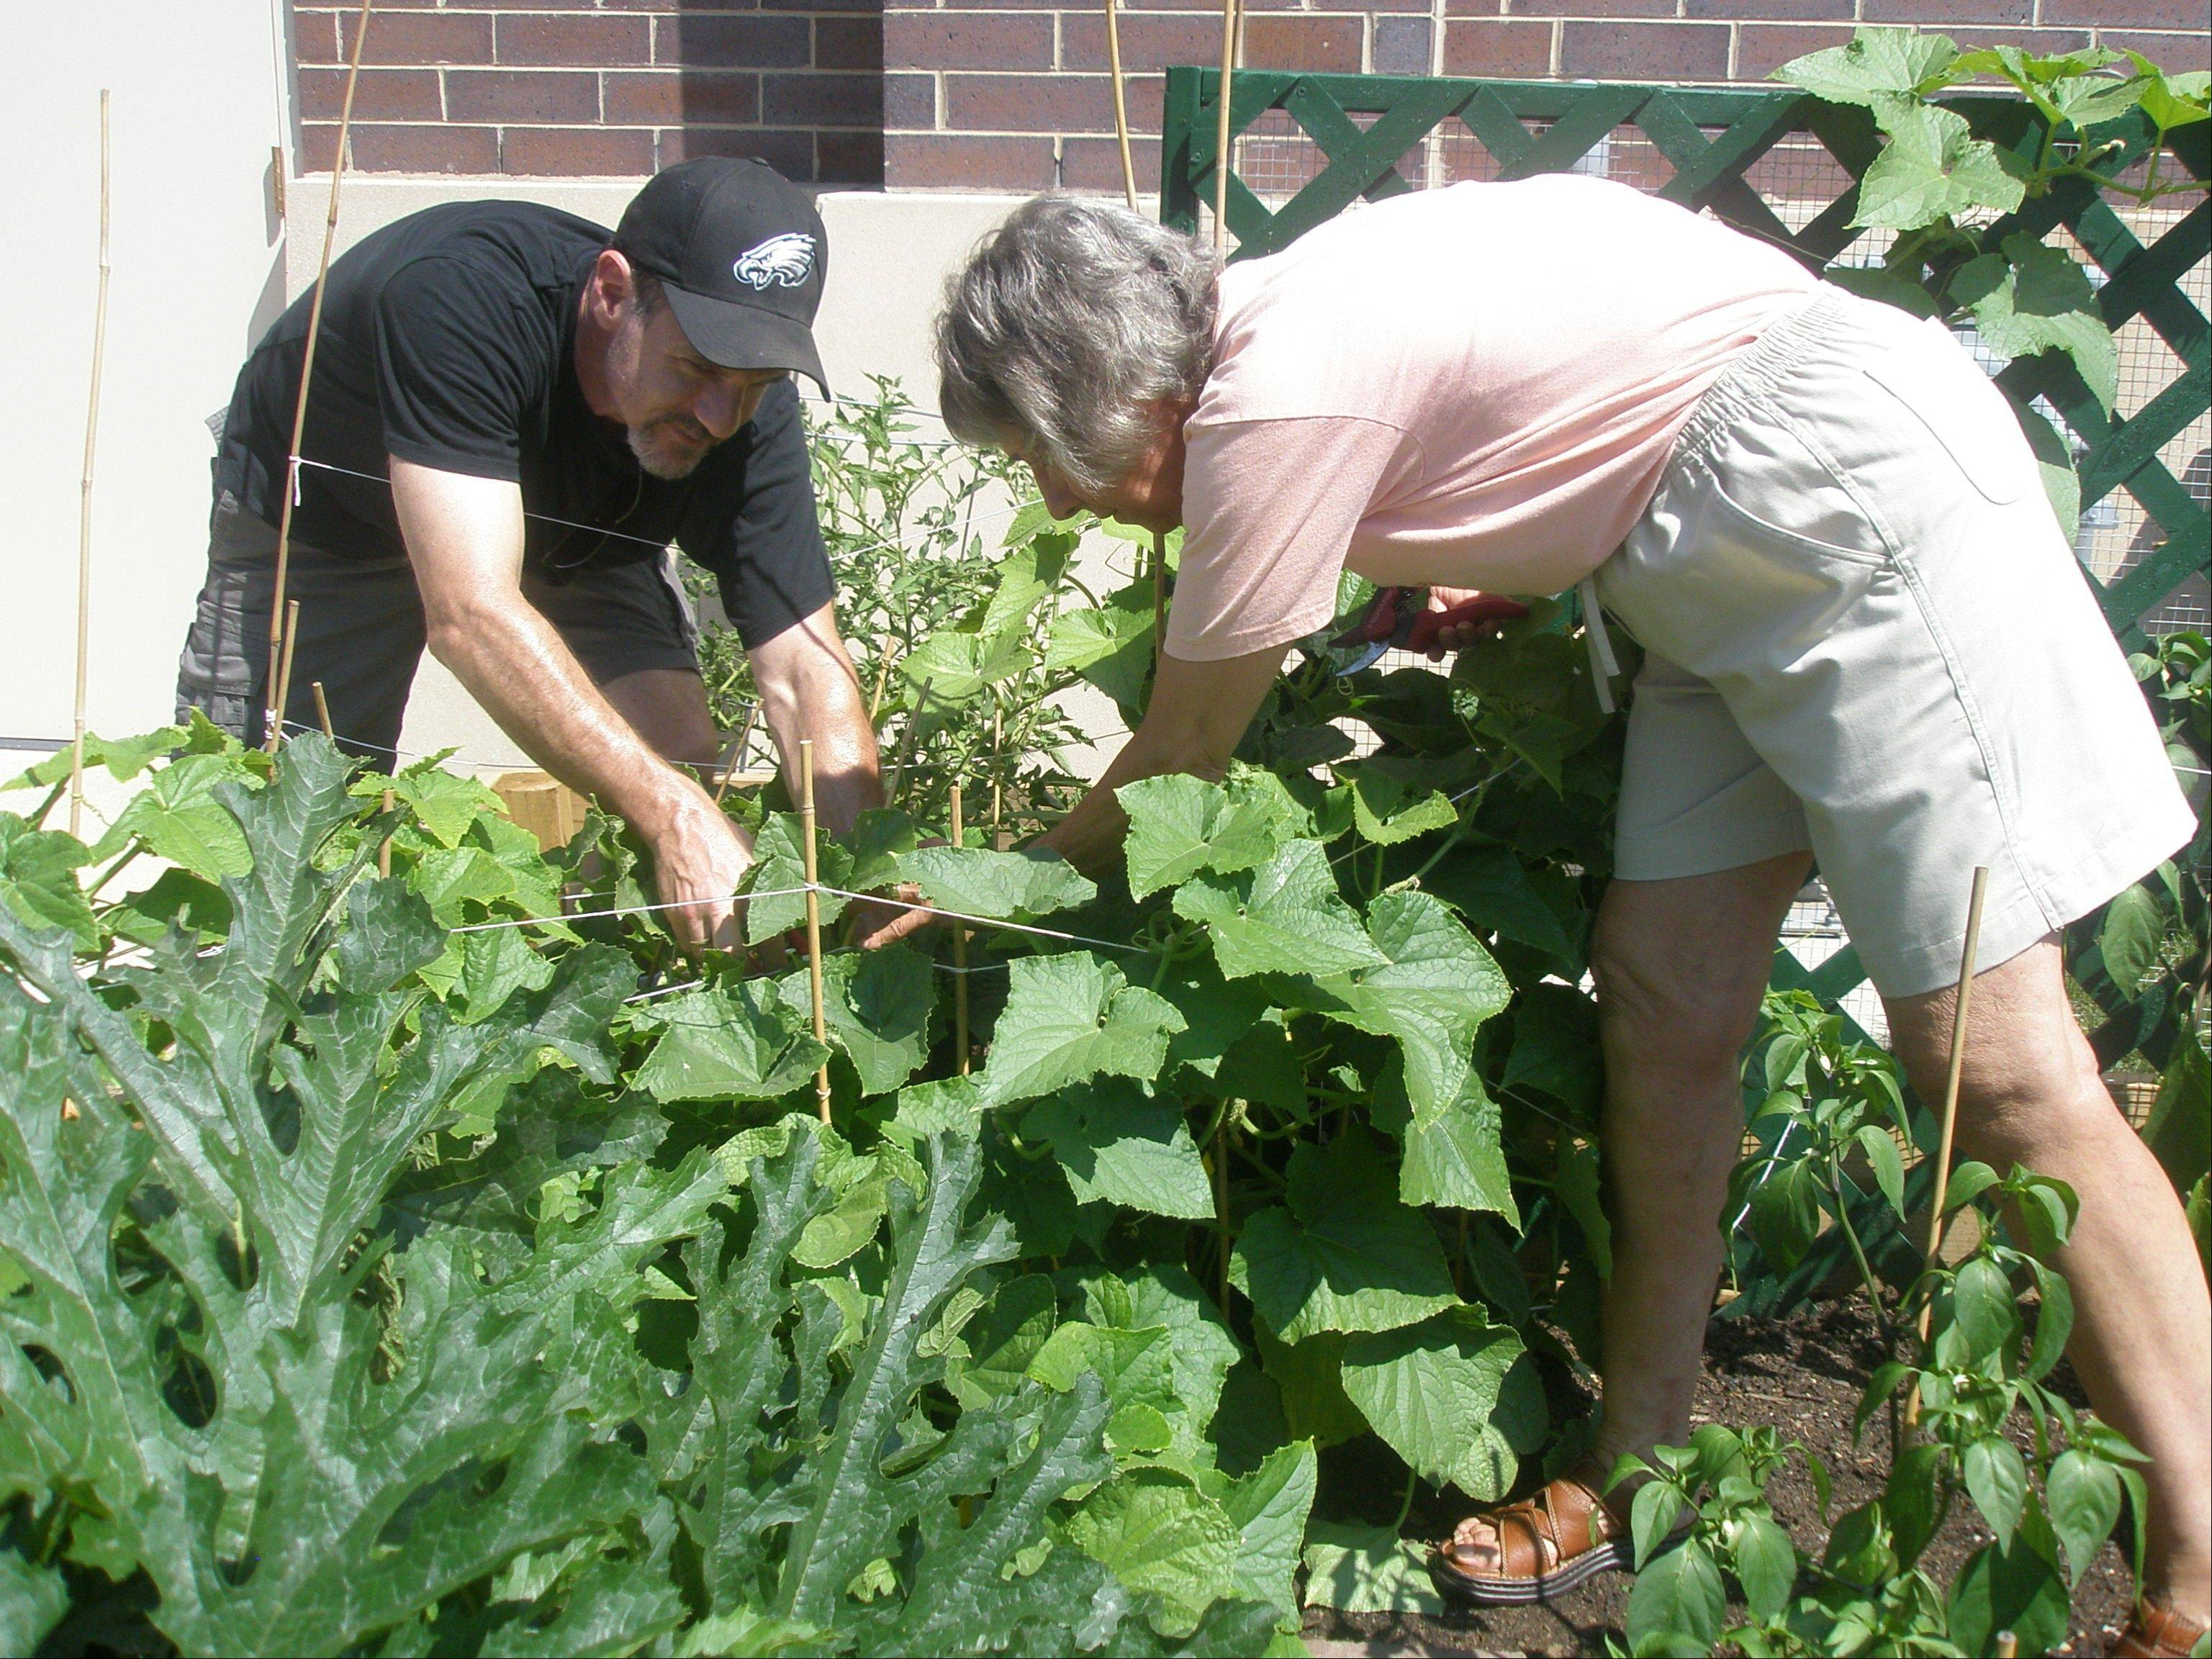 John Katz-Mariani and Sandi Epstein, both of Vernon Hills, tend a community garden at Congregation Or Shalom temple.